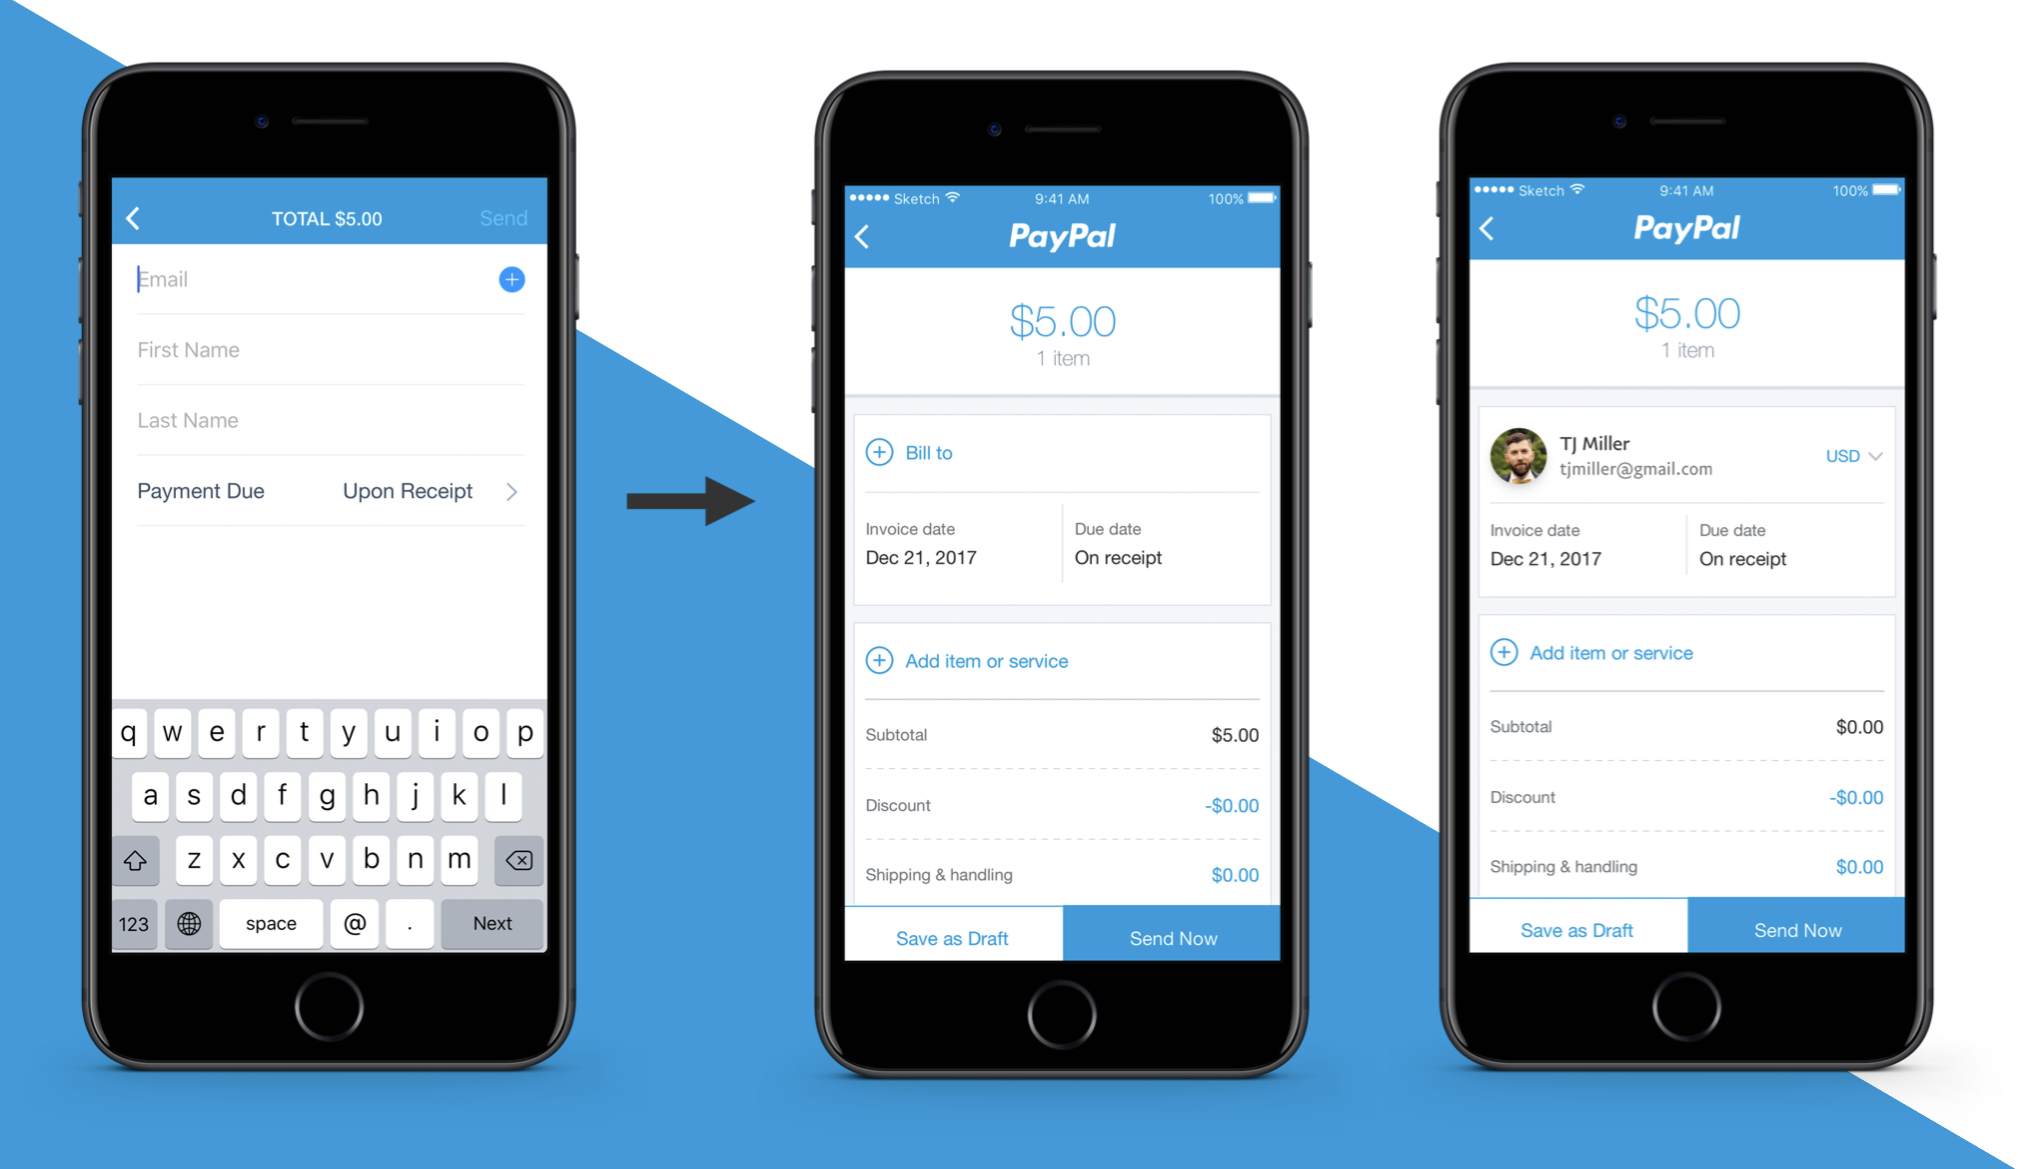 Reimagining Invoicing | PayPal Here